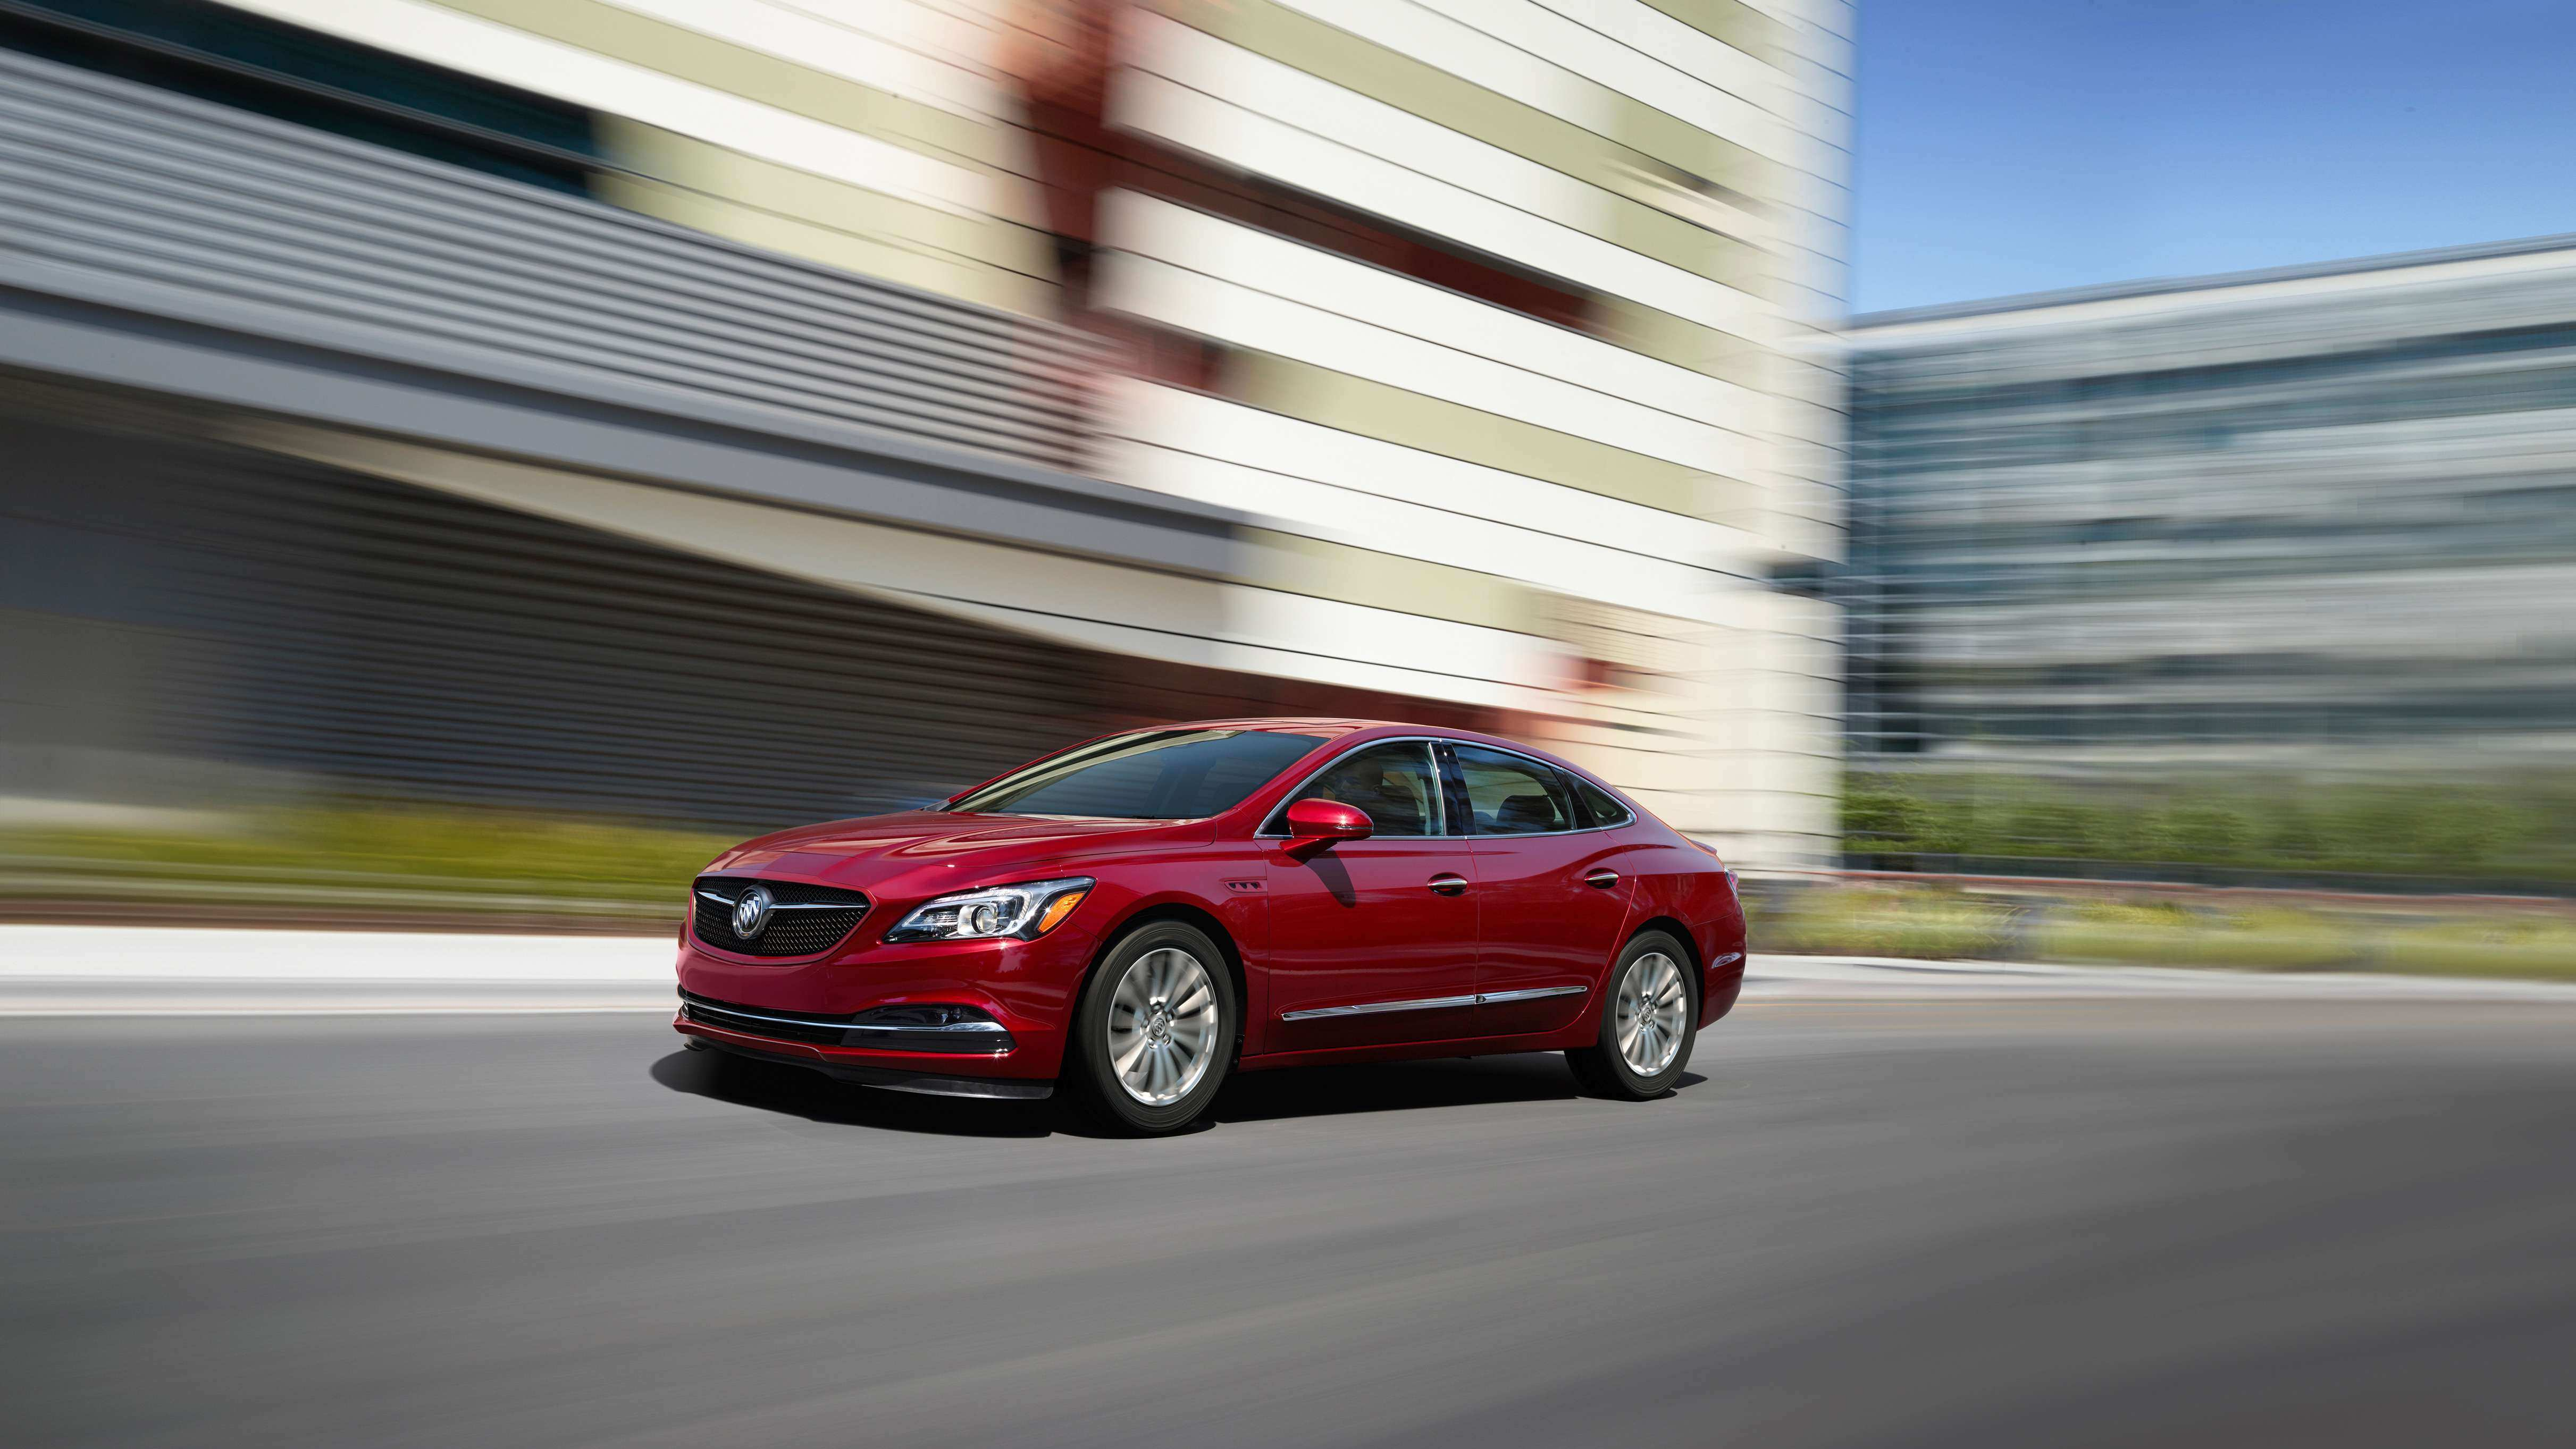 13 Best Review 2019 Buick Sports Car Specs by 2019 Buick Sports Car